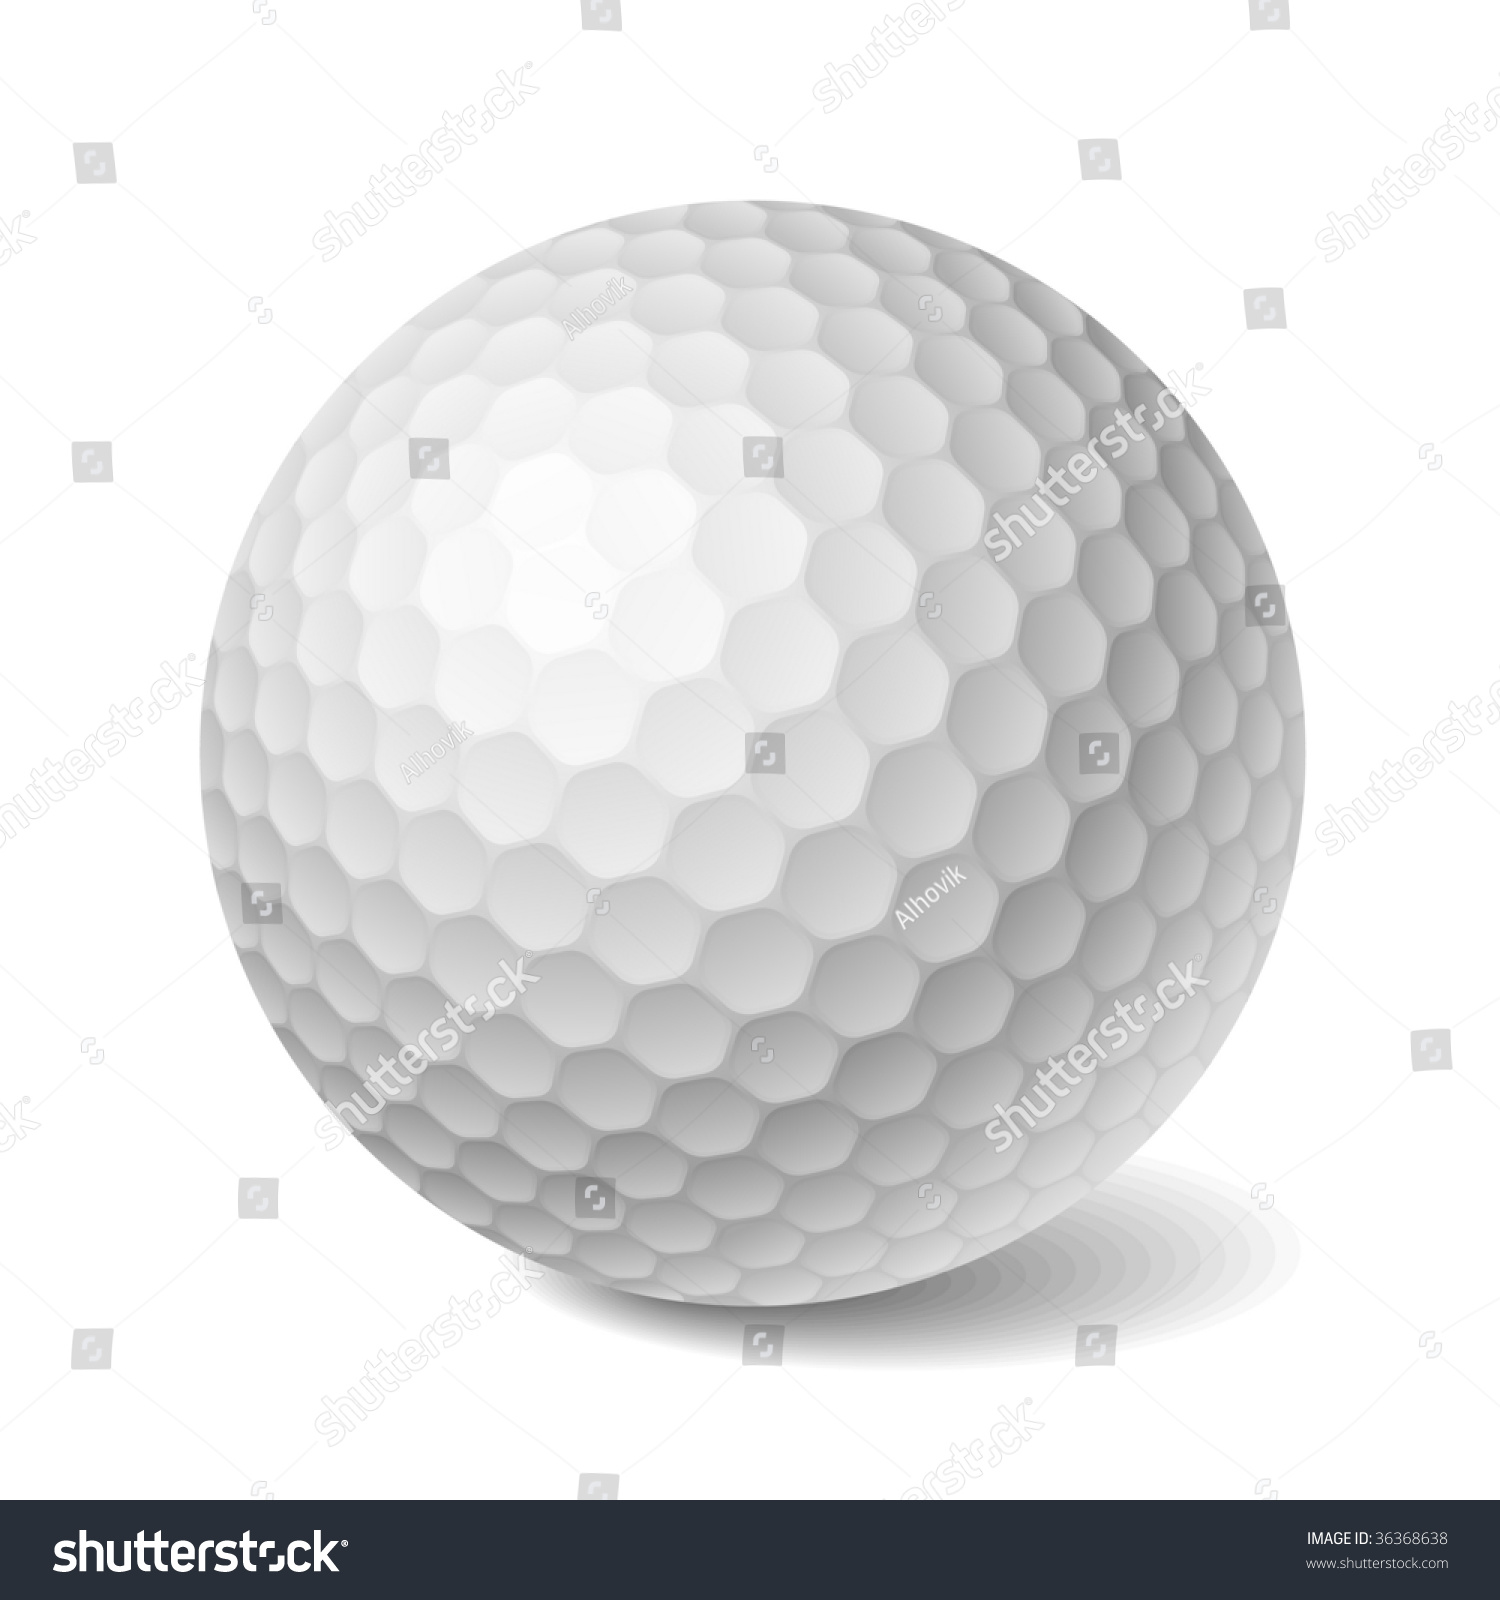 golf ball vector stock photo photo vector illustration 36368638 rh shutterstock com Double Dimple Golf Balls Golf Ball Dimples On Car